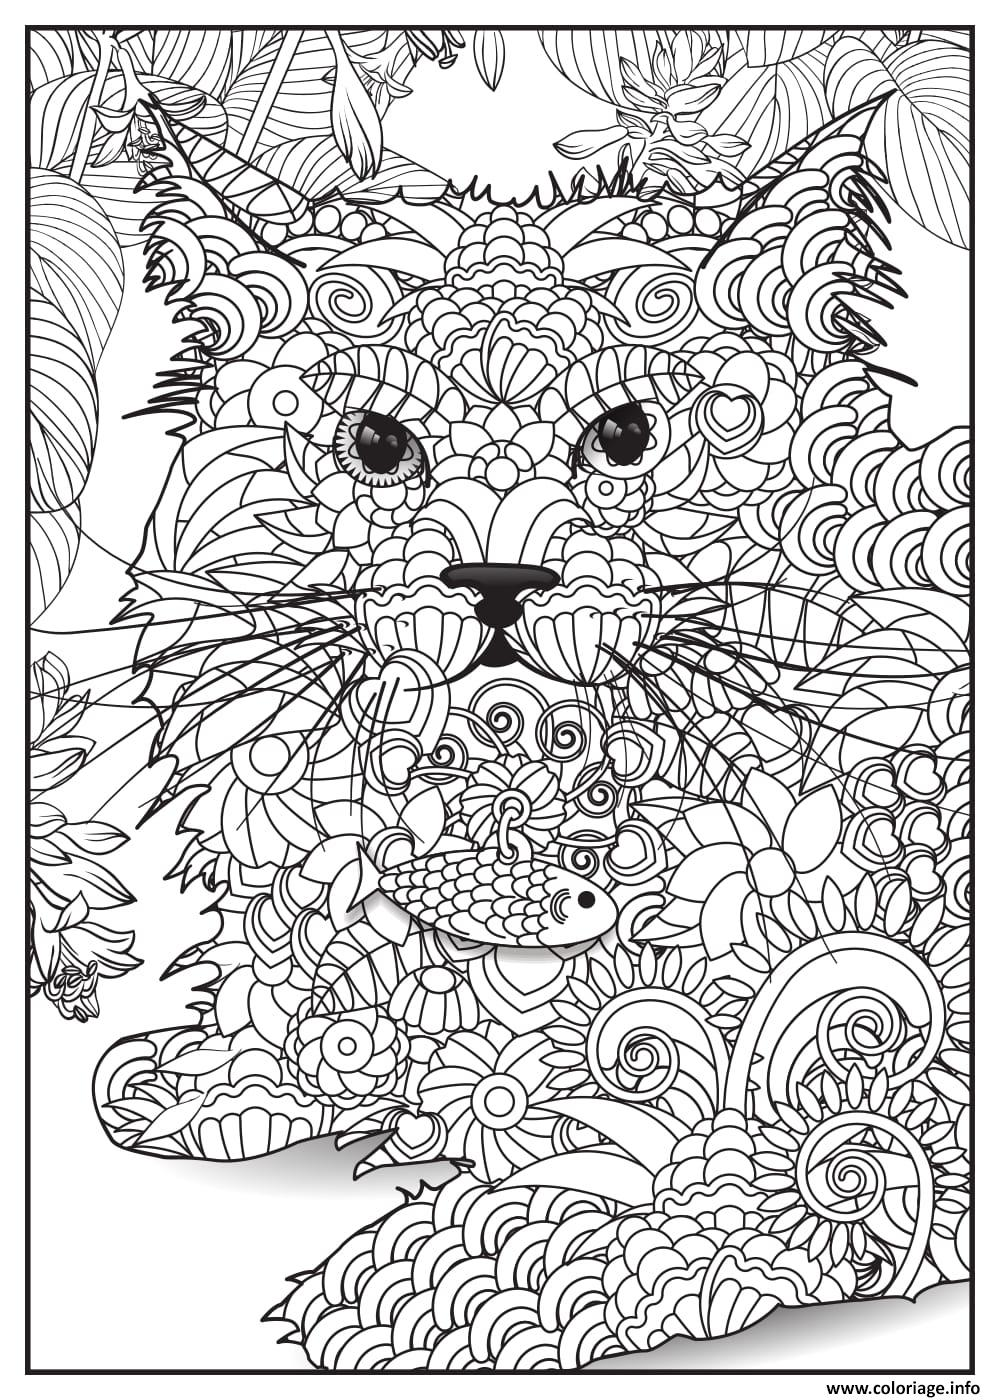 Coloriage chat lynx adulte animaux dessin - Chat a colorier adulte ...